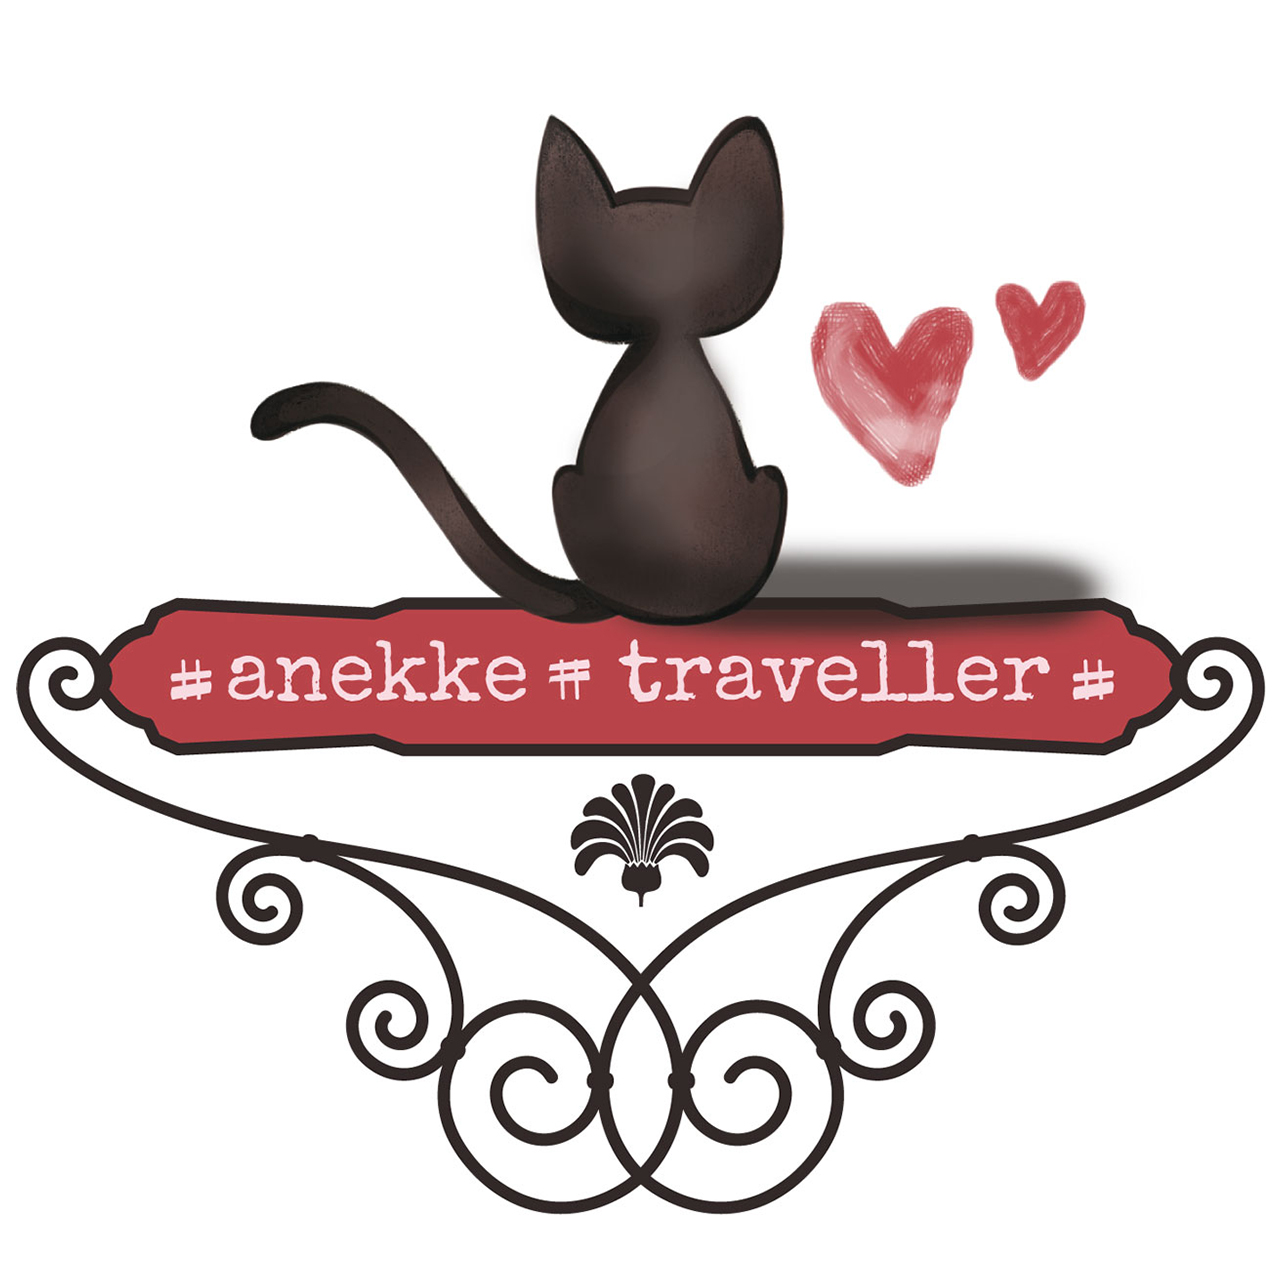 anekke traveller cat